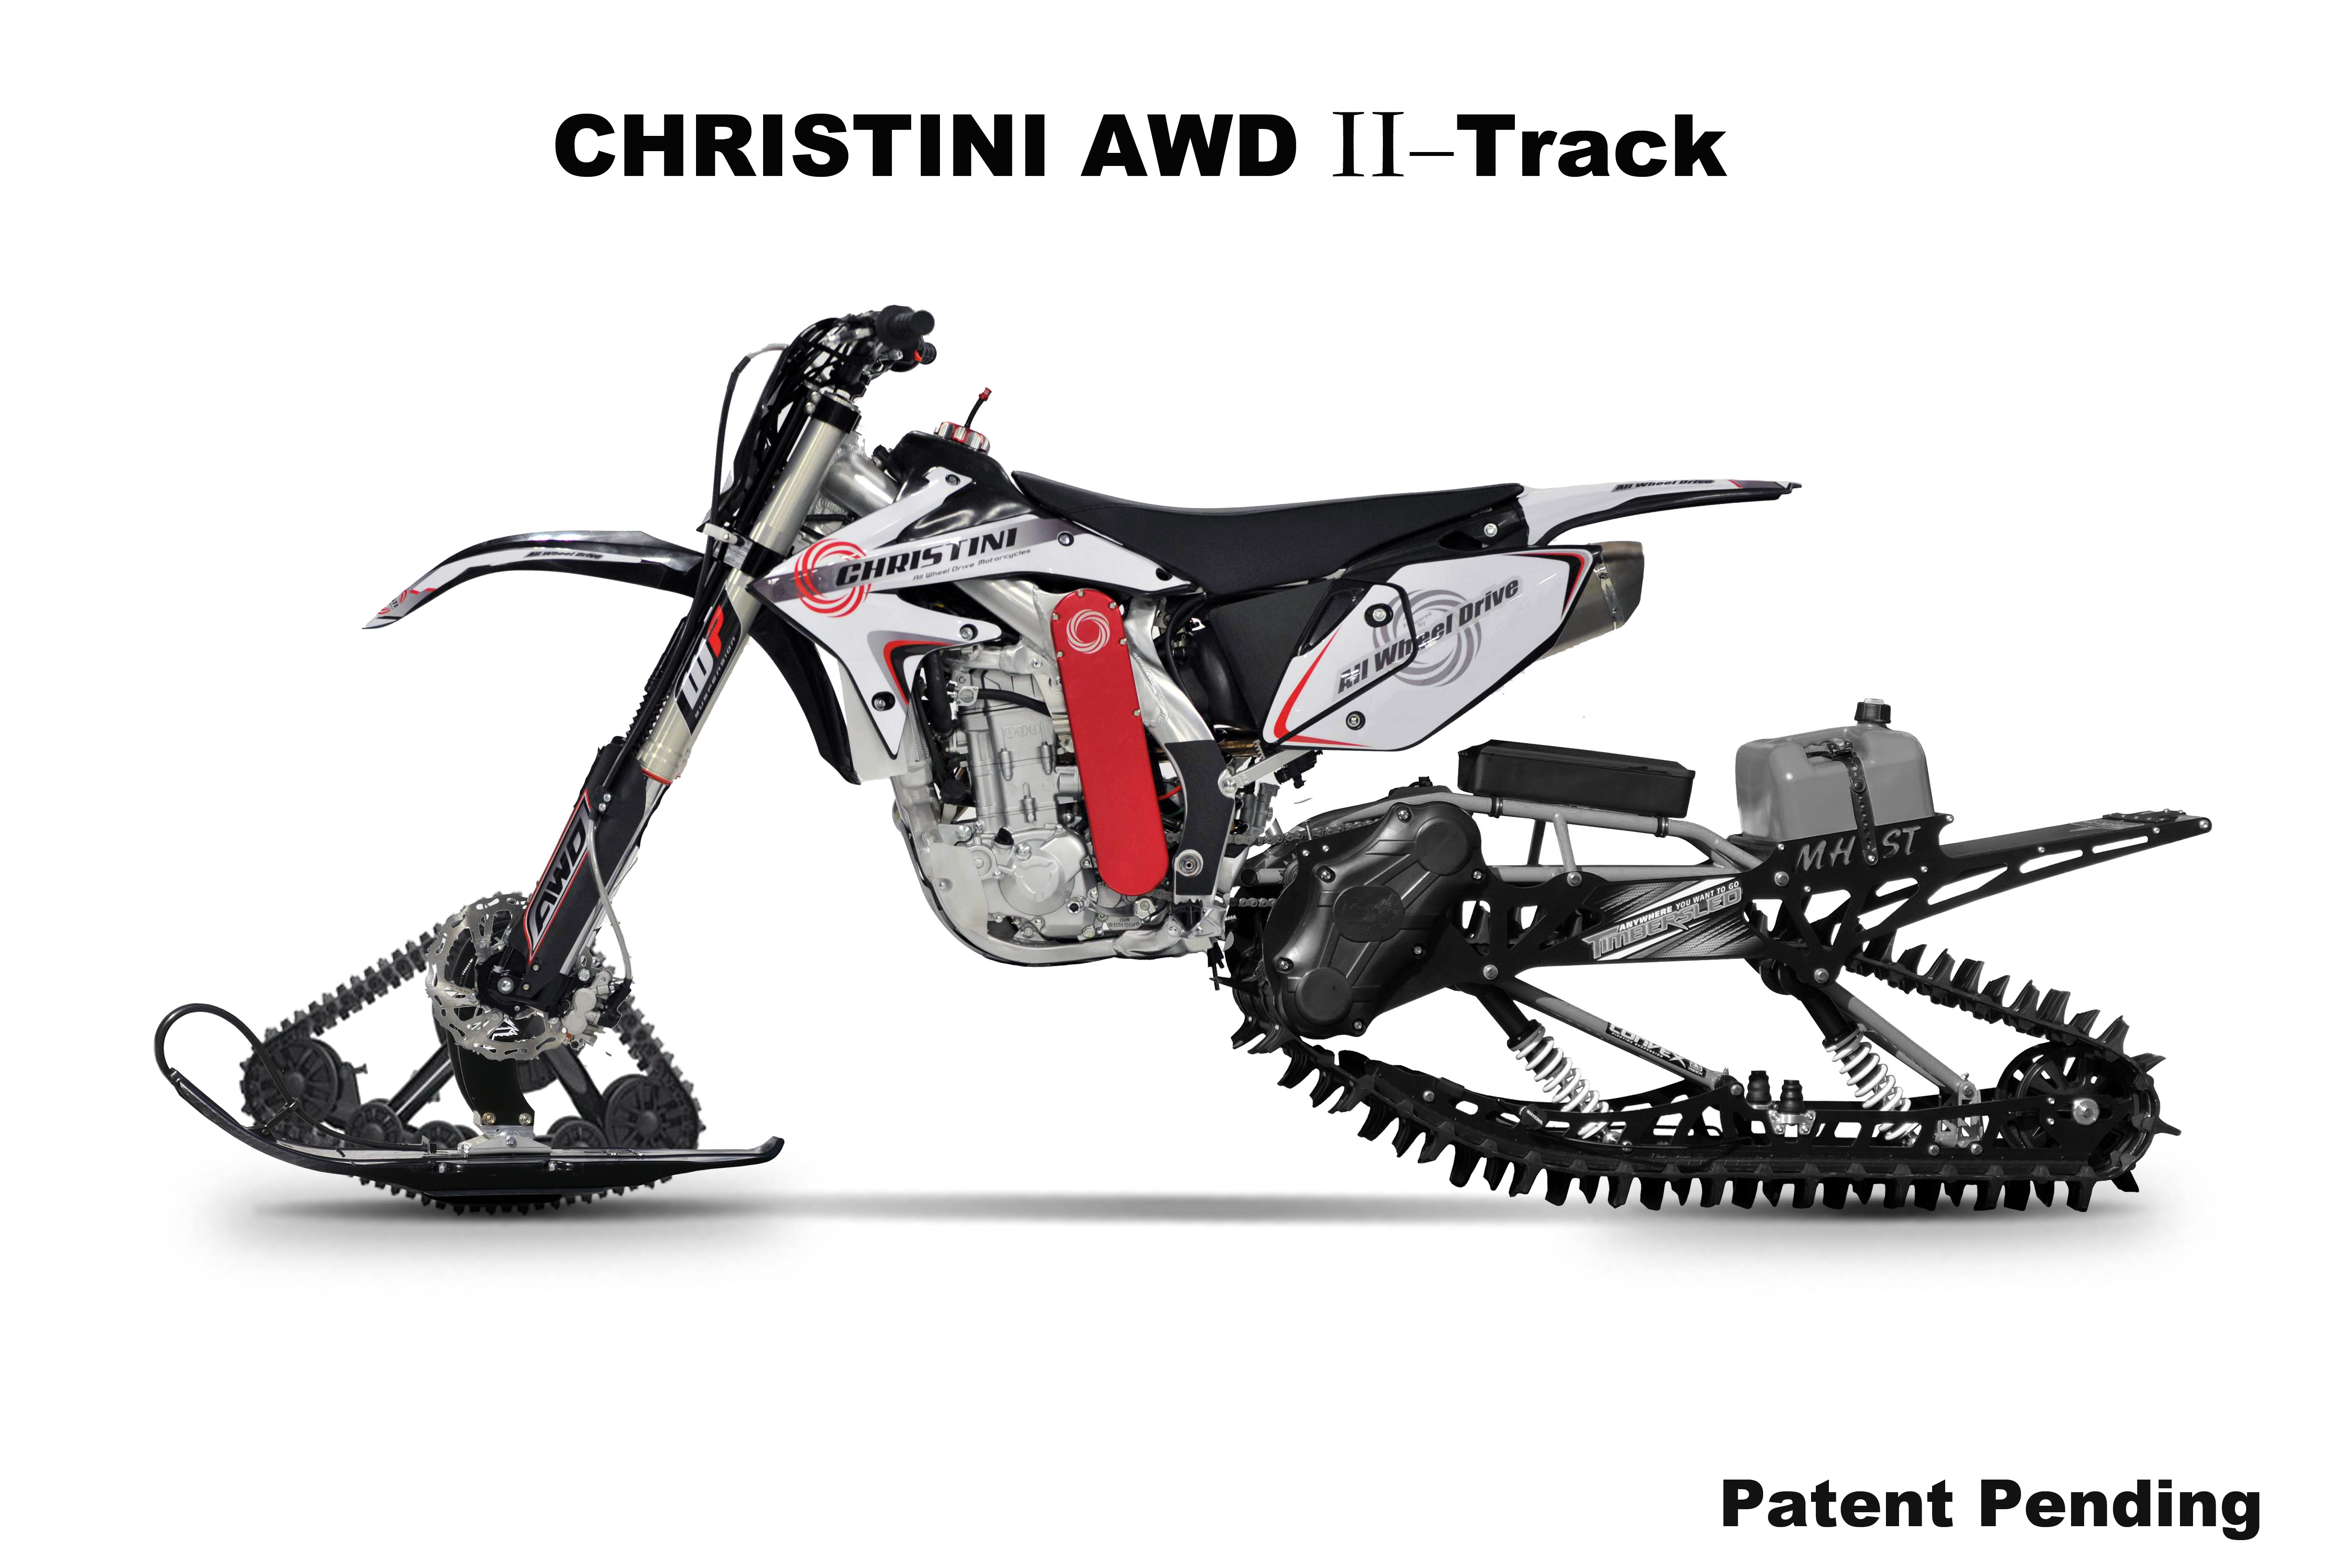 CHRISTINI All Wheel Drive to Launch II-Track Snow Utility Bike